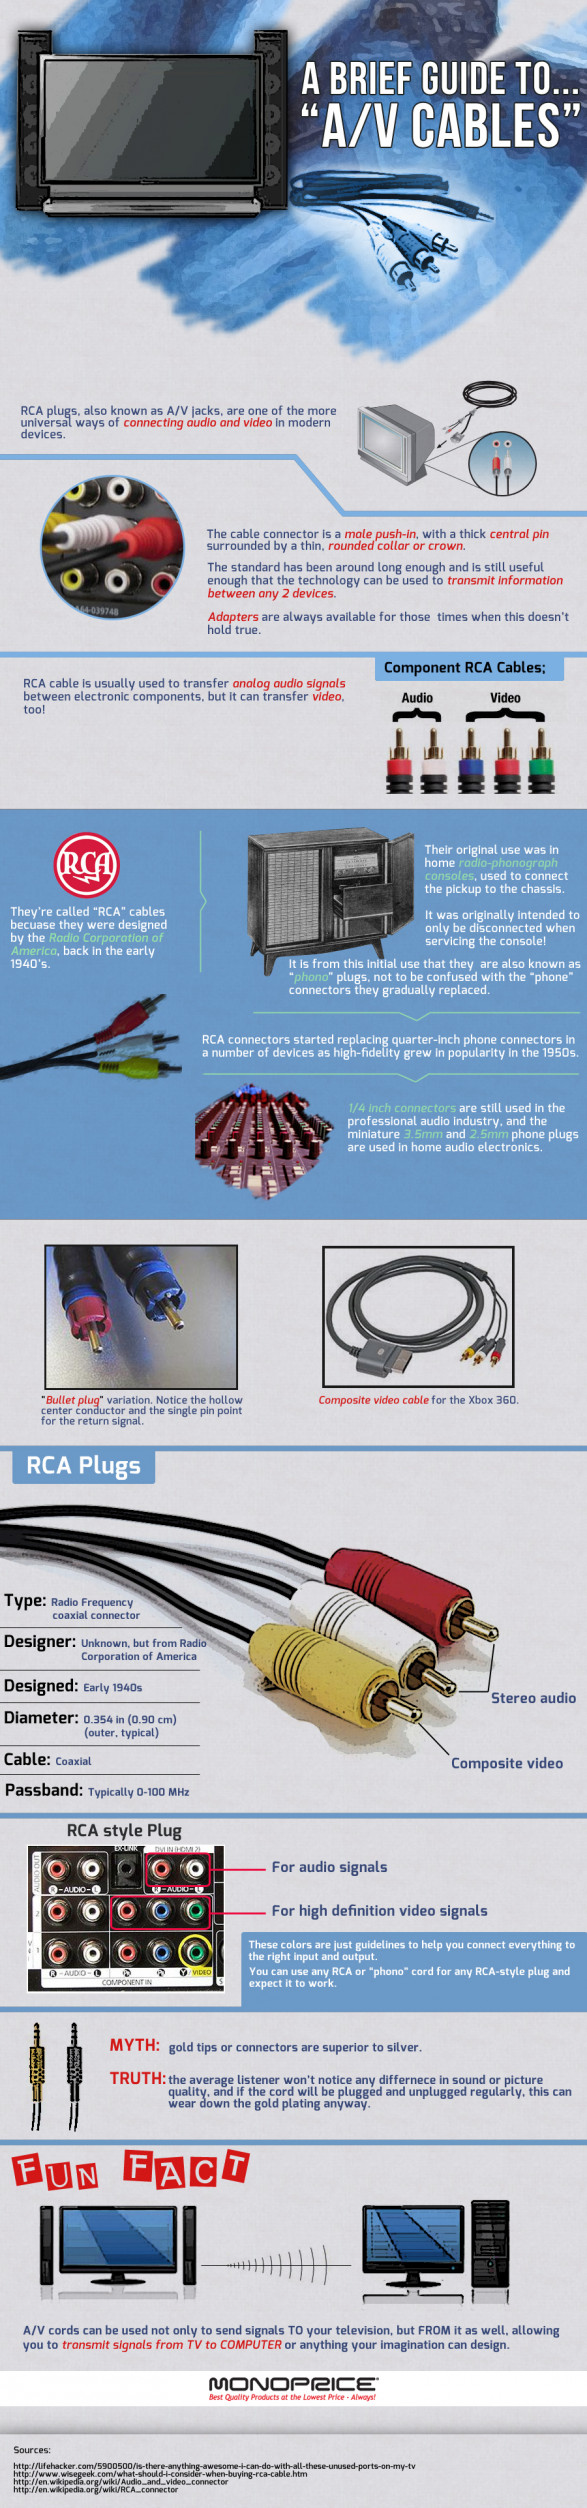 "A BRIEF GUIDE TO� ""A/V CABLES"""